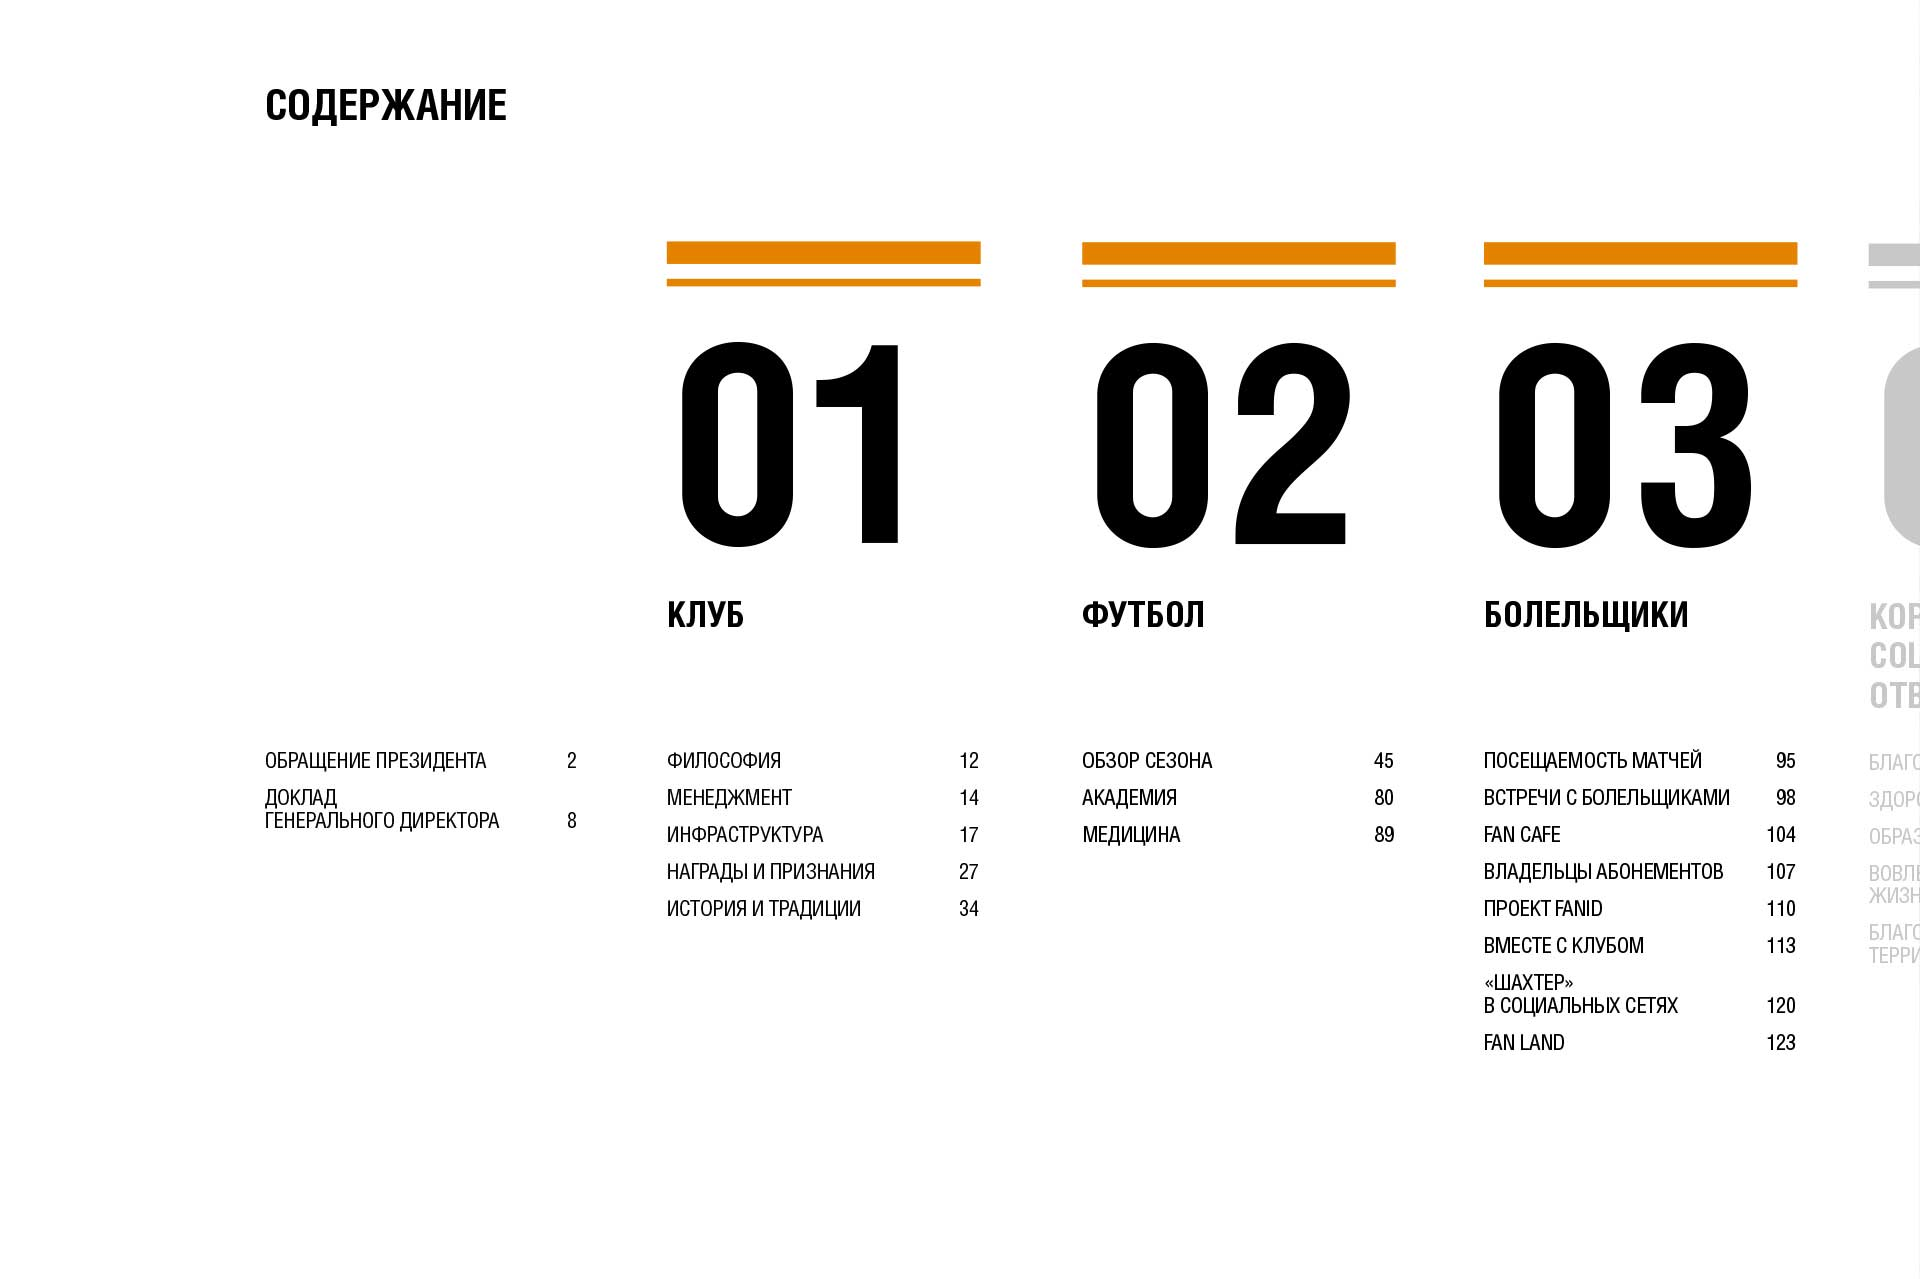 Annual Report, FC Shakhtar